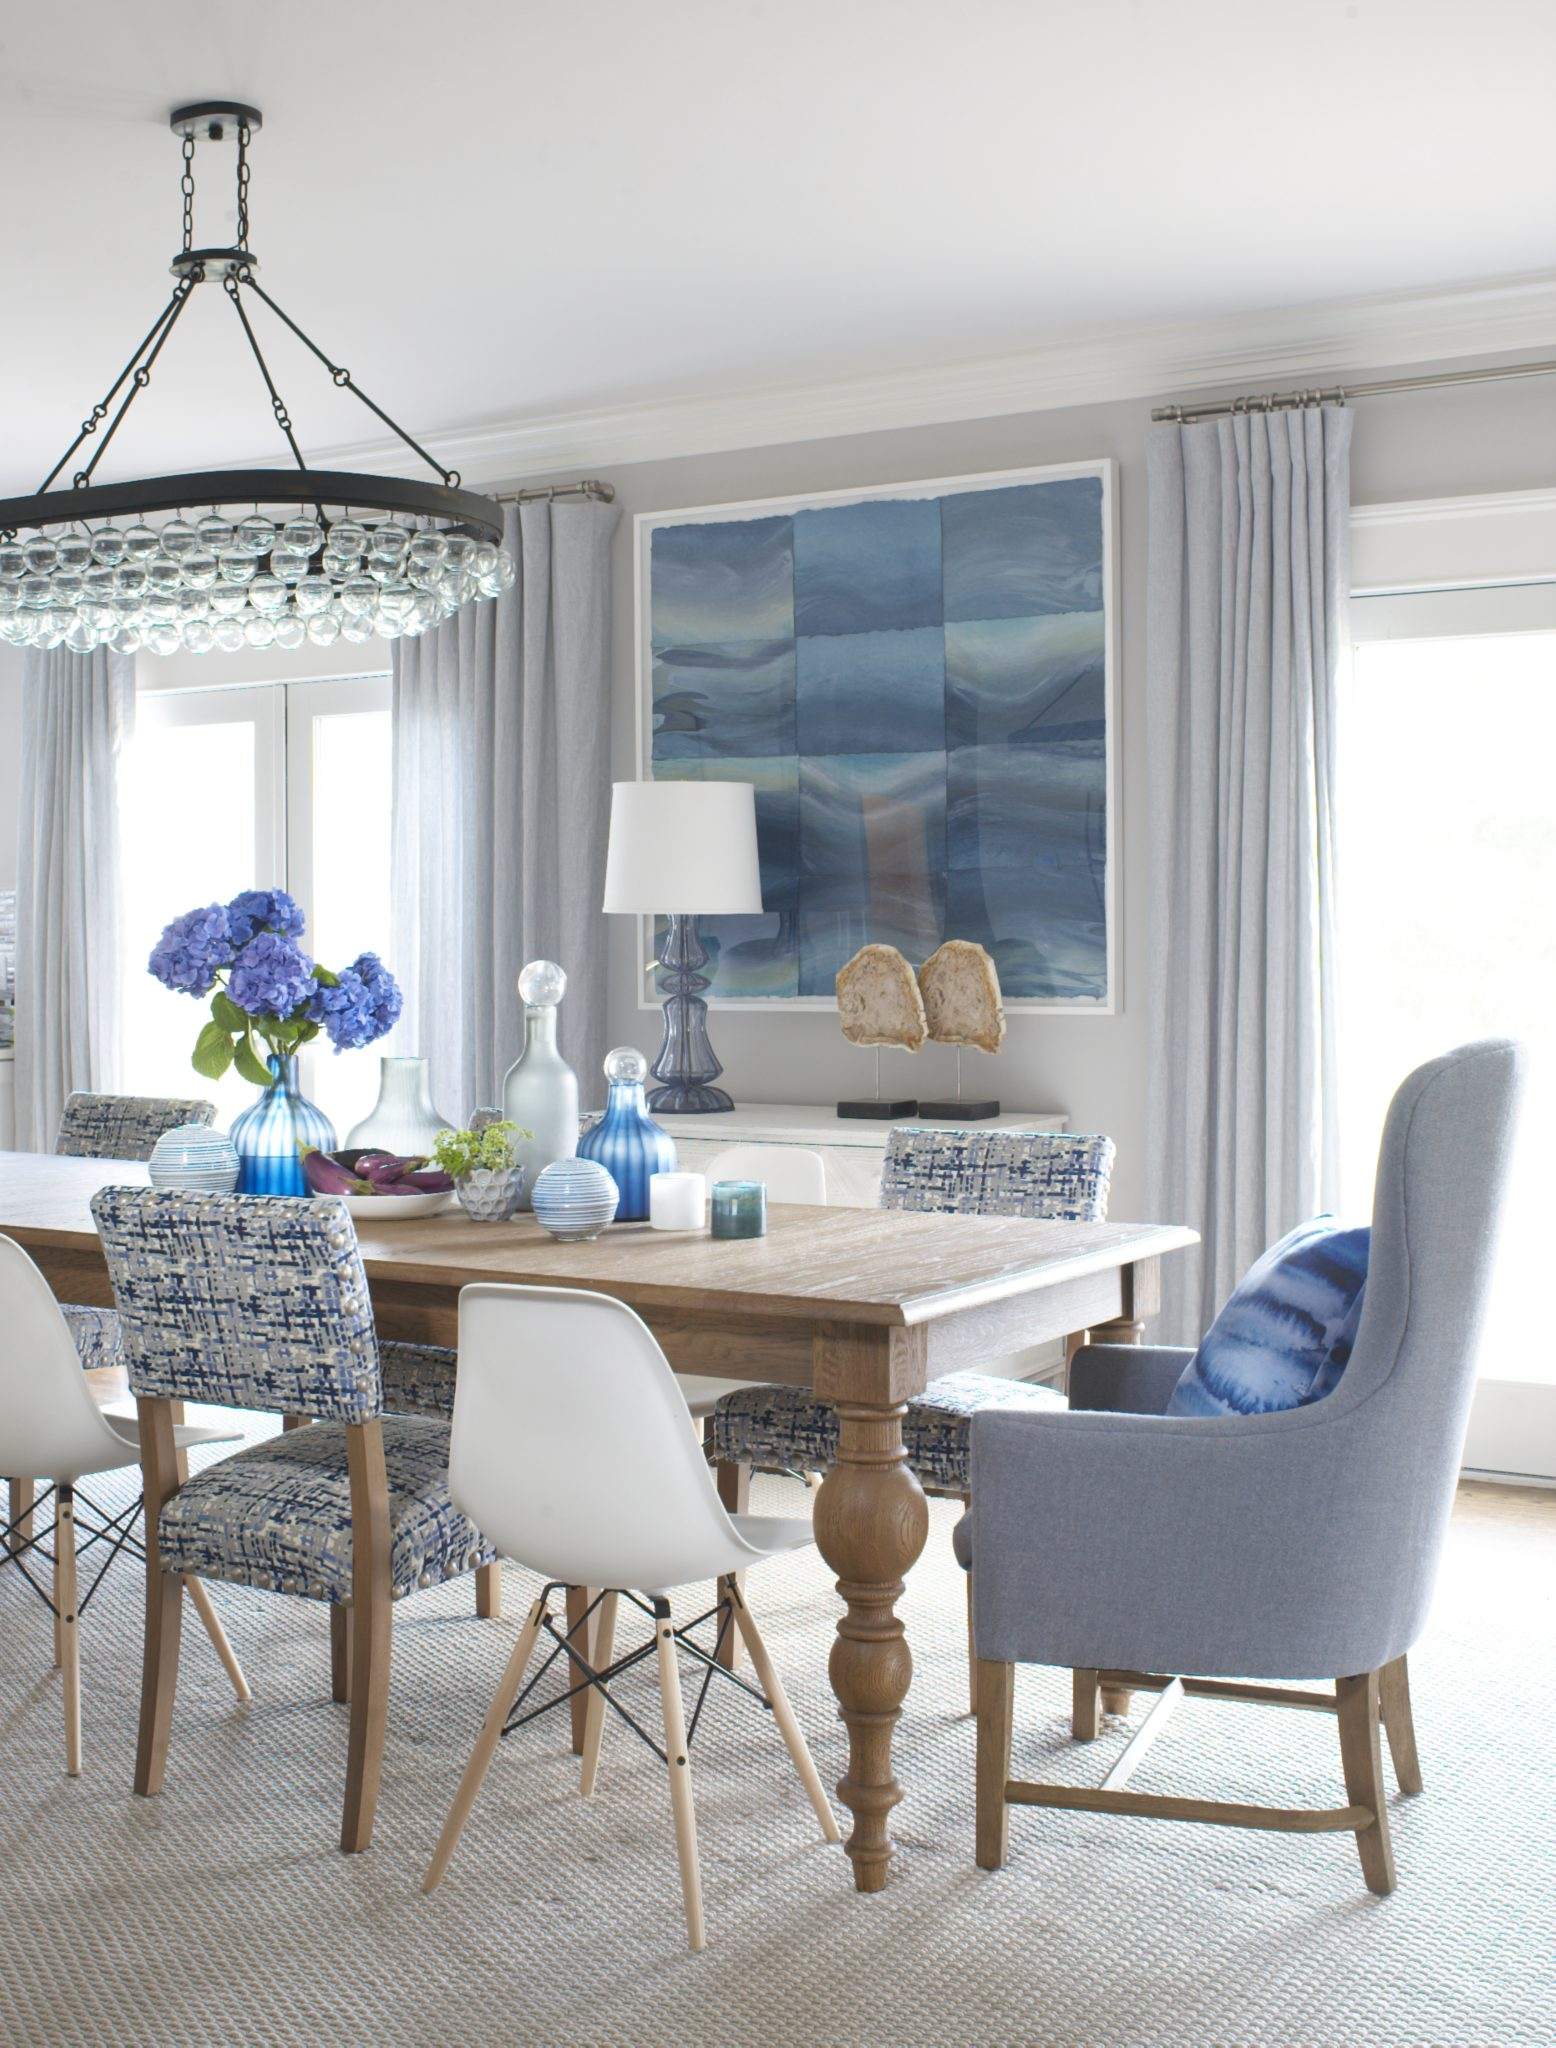 """7.Emphasize Views with Every Detail   If a home has water views, every detail in the house should enhance those vistas, rather than obstruct them. Window treatments are key for emphasizing water views, and designers often recommend sheer or light drapery. Other accents matter as well.For example, large, contemporary pendants may help a room look more modern, butthey risk blocking windows from different perspectives in a room, depending on the layout of a room and the fixture's location.Rachel Reider, a Boston-based interior designer, recommends glass lighting.""""Glass oversized light fixtures are another go to element in creating a modern coastal environment,"""" says Reider. """"They make a statement without obstructing water views."""""""